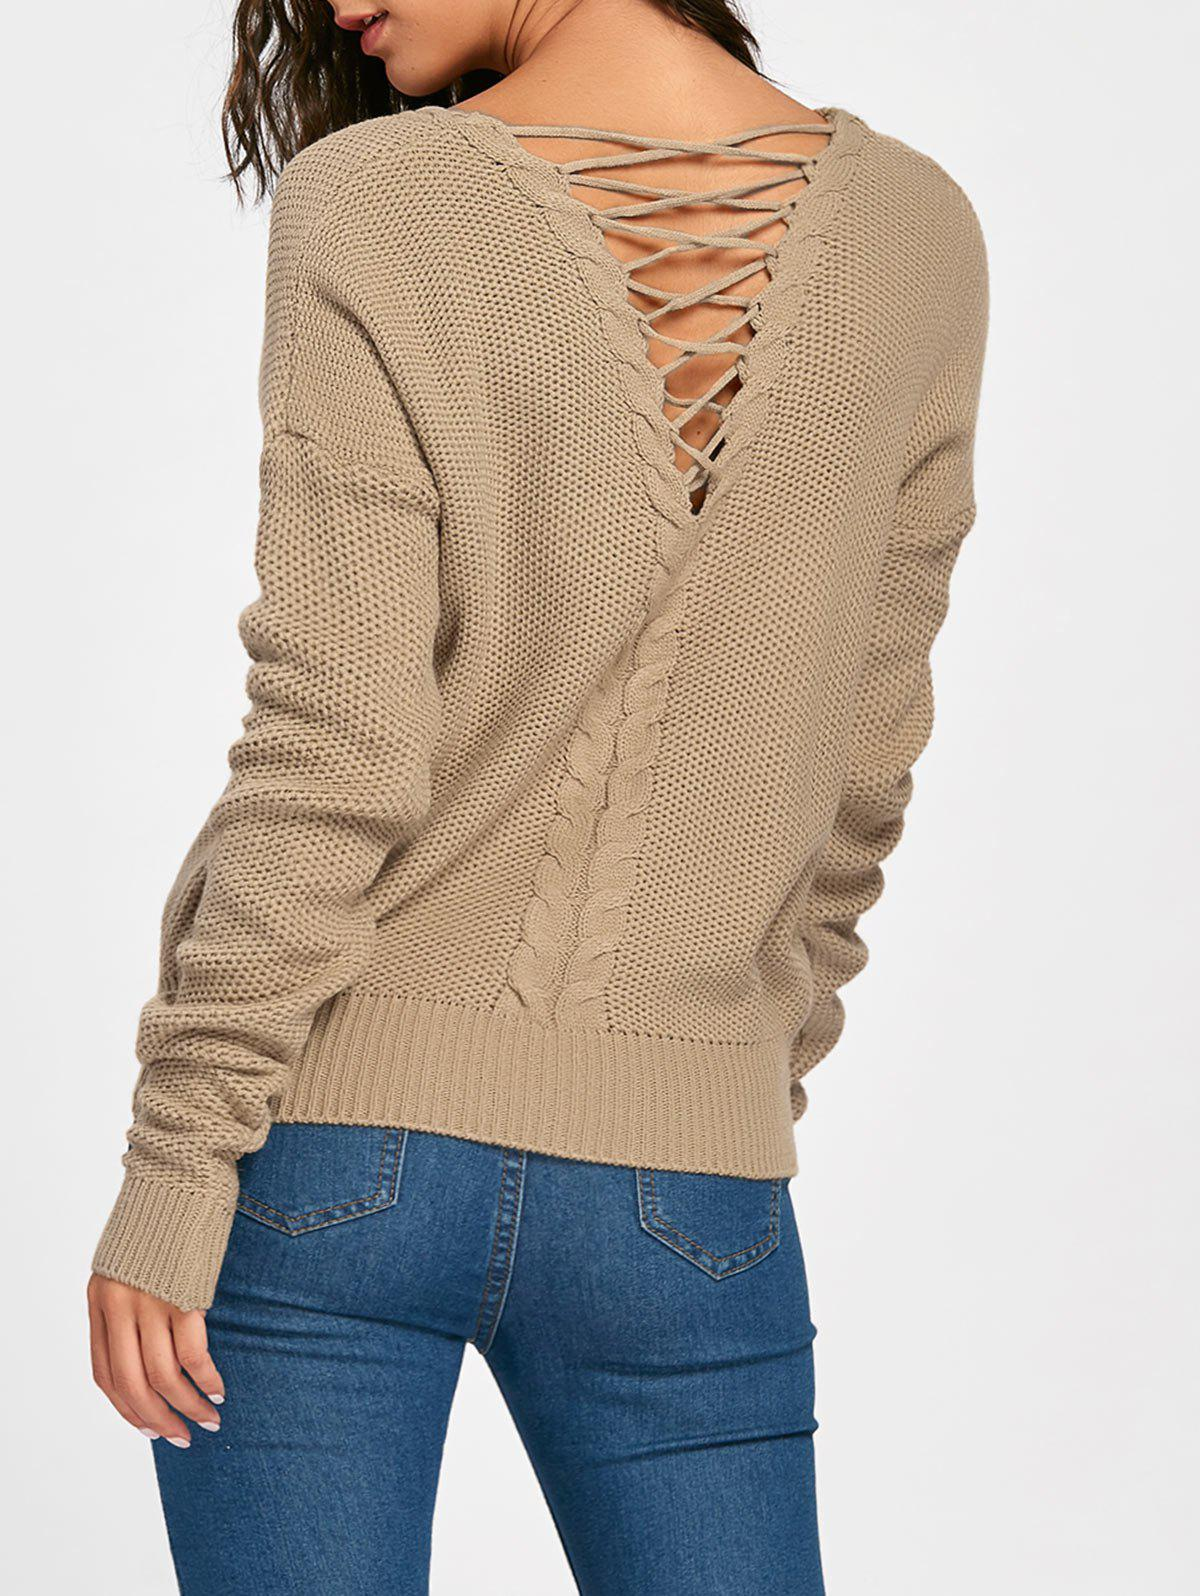 Cable Knitted Back Lace Up SweaterWOMEN<br><br>Size: ONE SIZE; Color: COFFEE; Type: Pullovers; Material: Acrylic; Sleeve Length: Full; Collar: Scoop Neck; Style: Fashion; Pattern Type: Solid; Embellishment: Lace up; Season: Fall,Spring; Weight: 0.3600kg; Package Contents: 1 x Sweater;